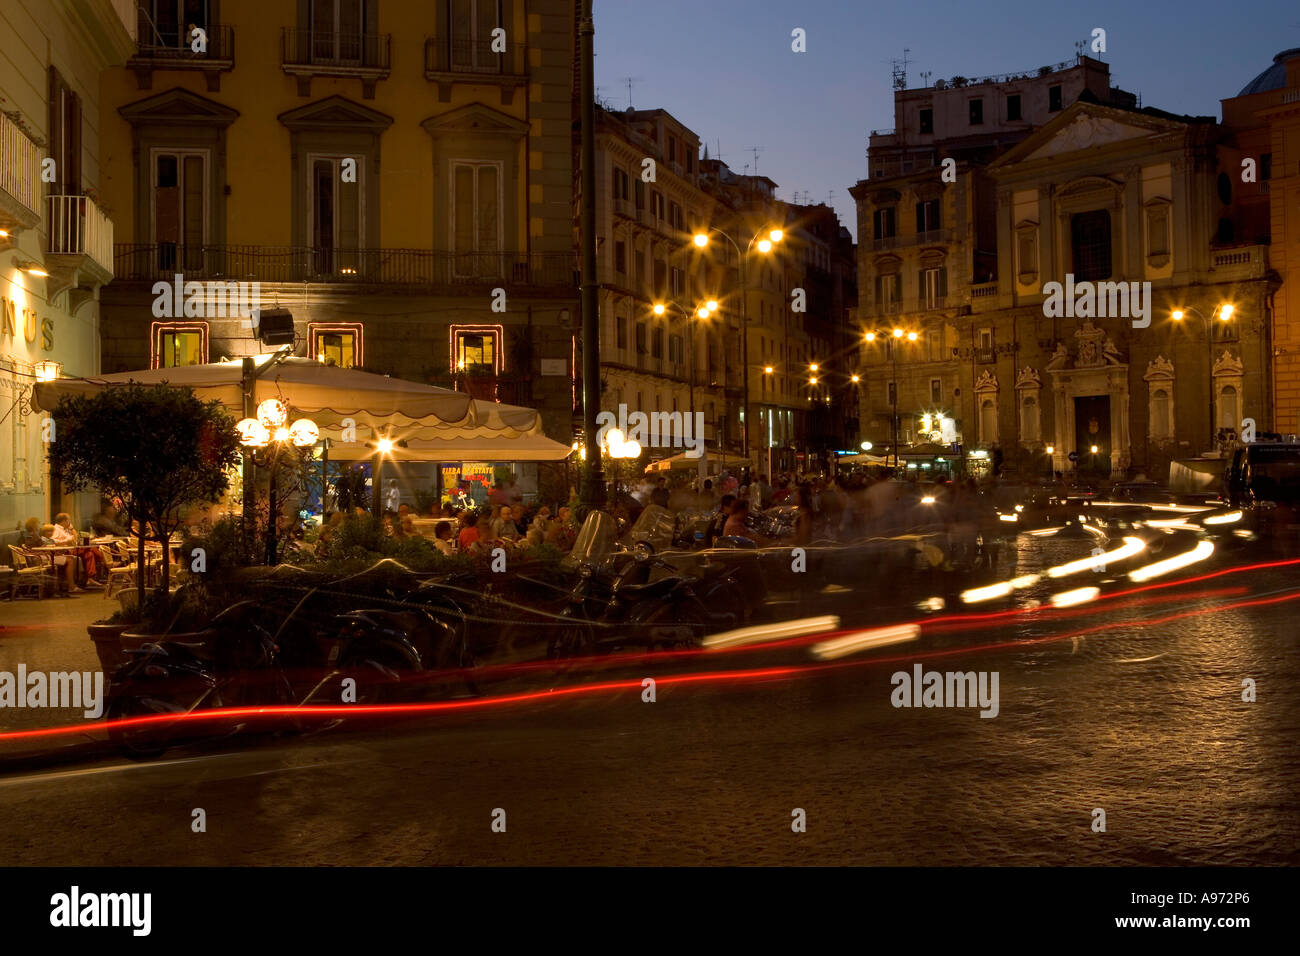 A nightscene in an Italian street shot with a long exposure to show the movement of traffic around the restaurant - Stock Image